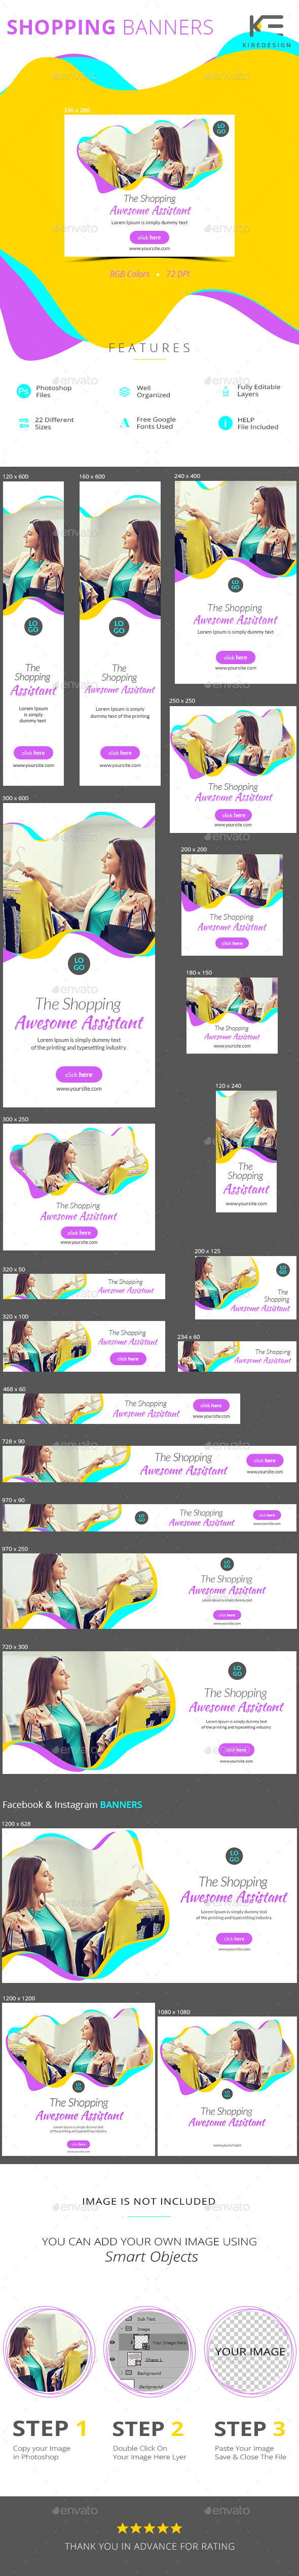 Shopping Banners - Banners & Ads Web Elements